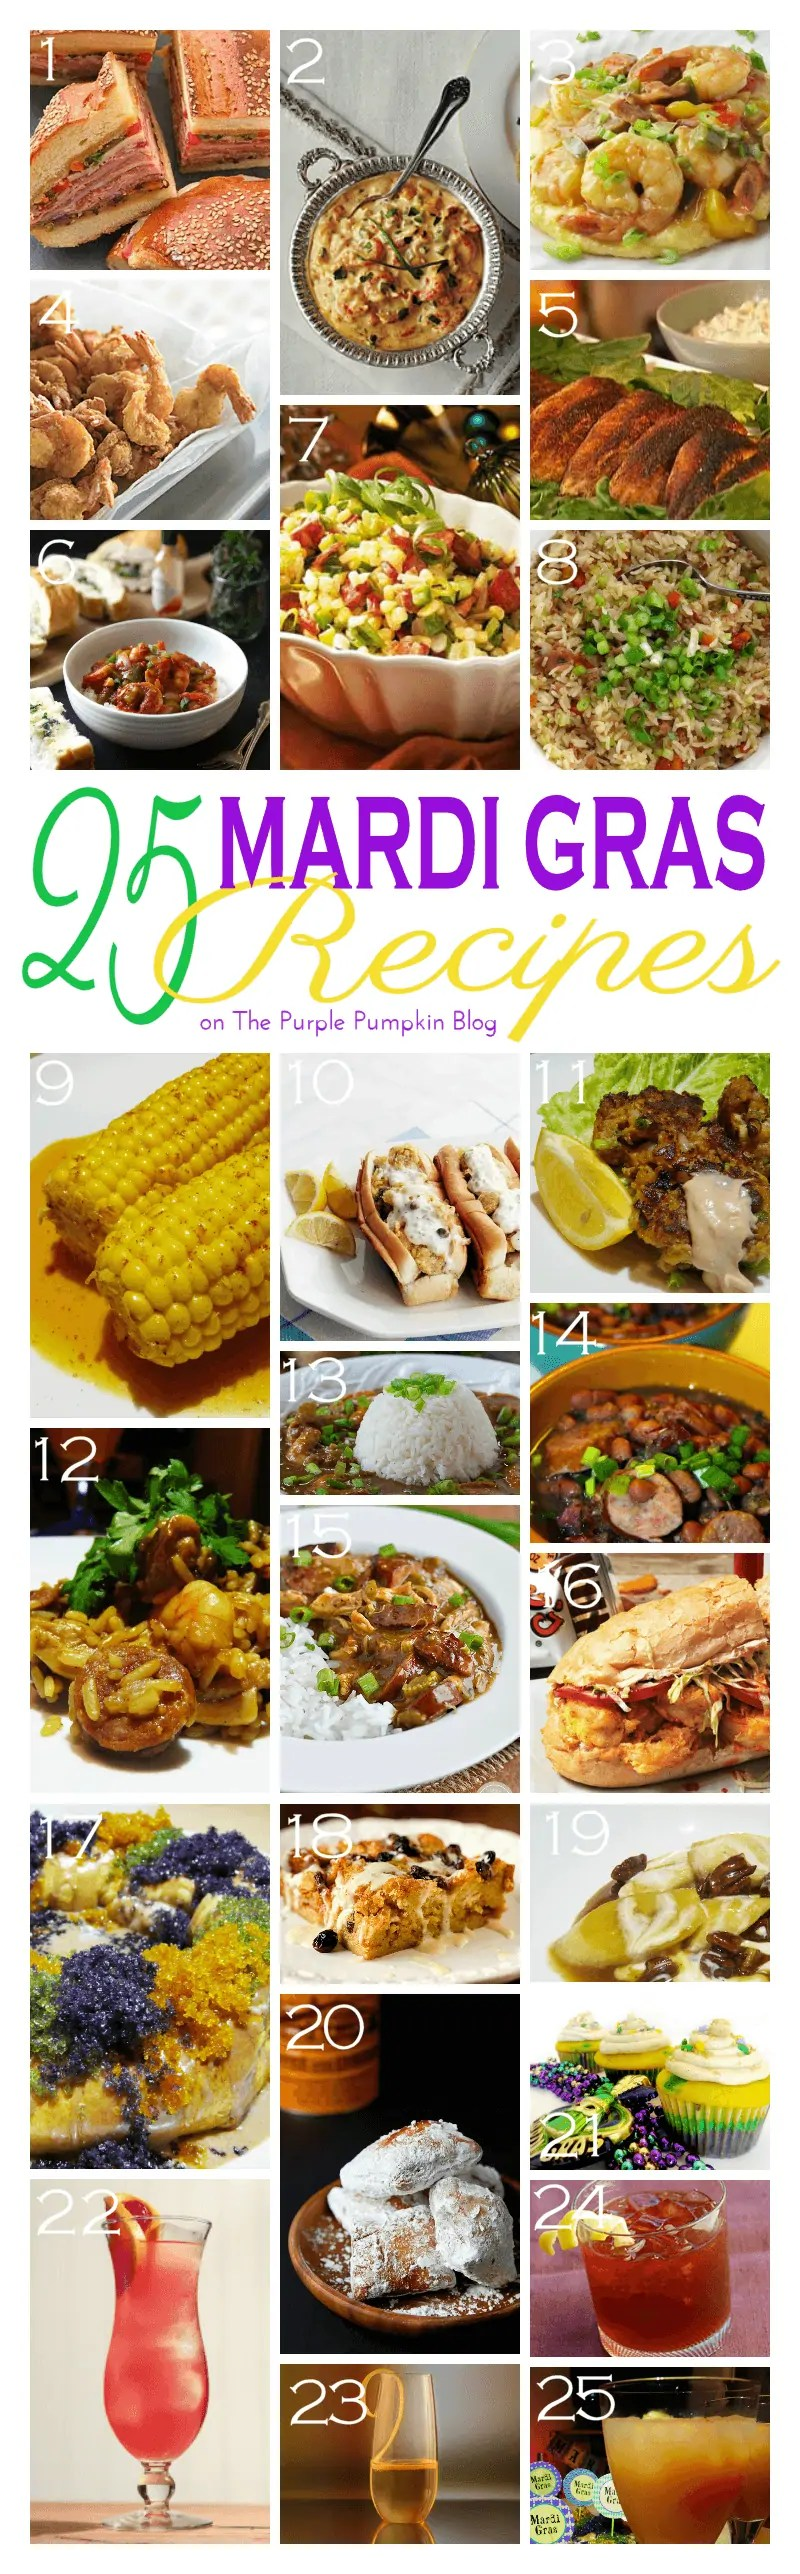 25 Mardi Gras Recipes on The Purple Pumpkin Blog